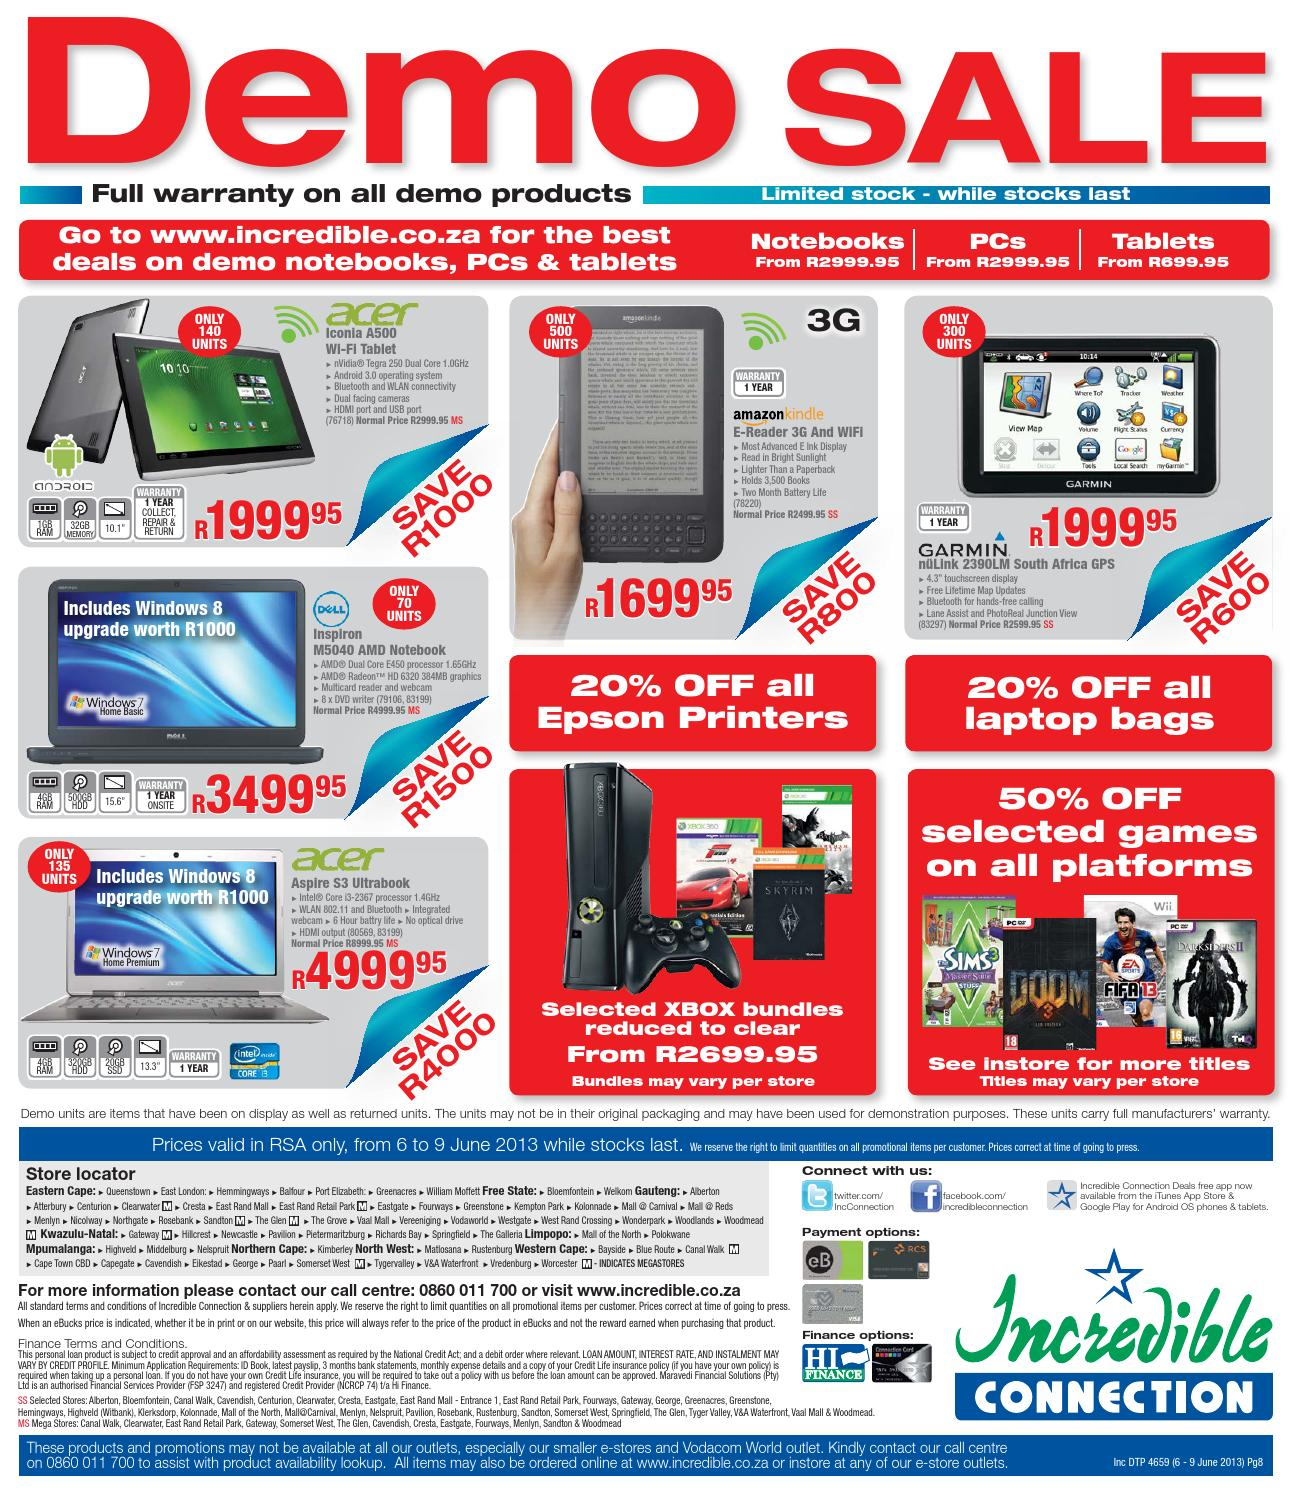 Incredible Connection Specials And Promotions 6 9 June 2013 By Hypertext Media Issuu